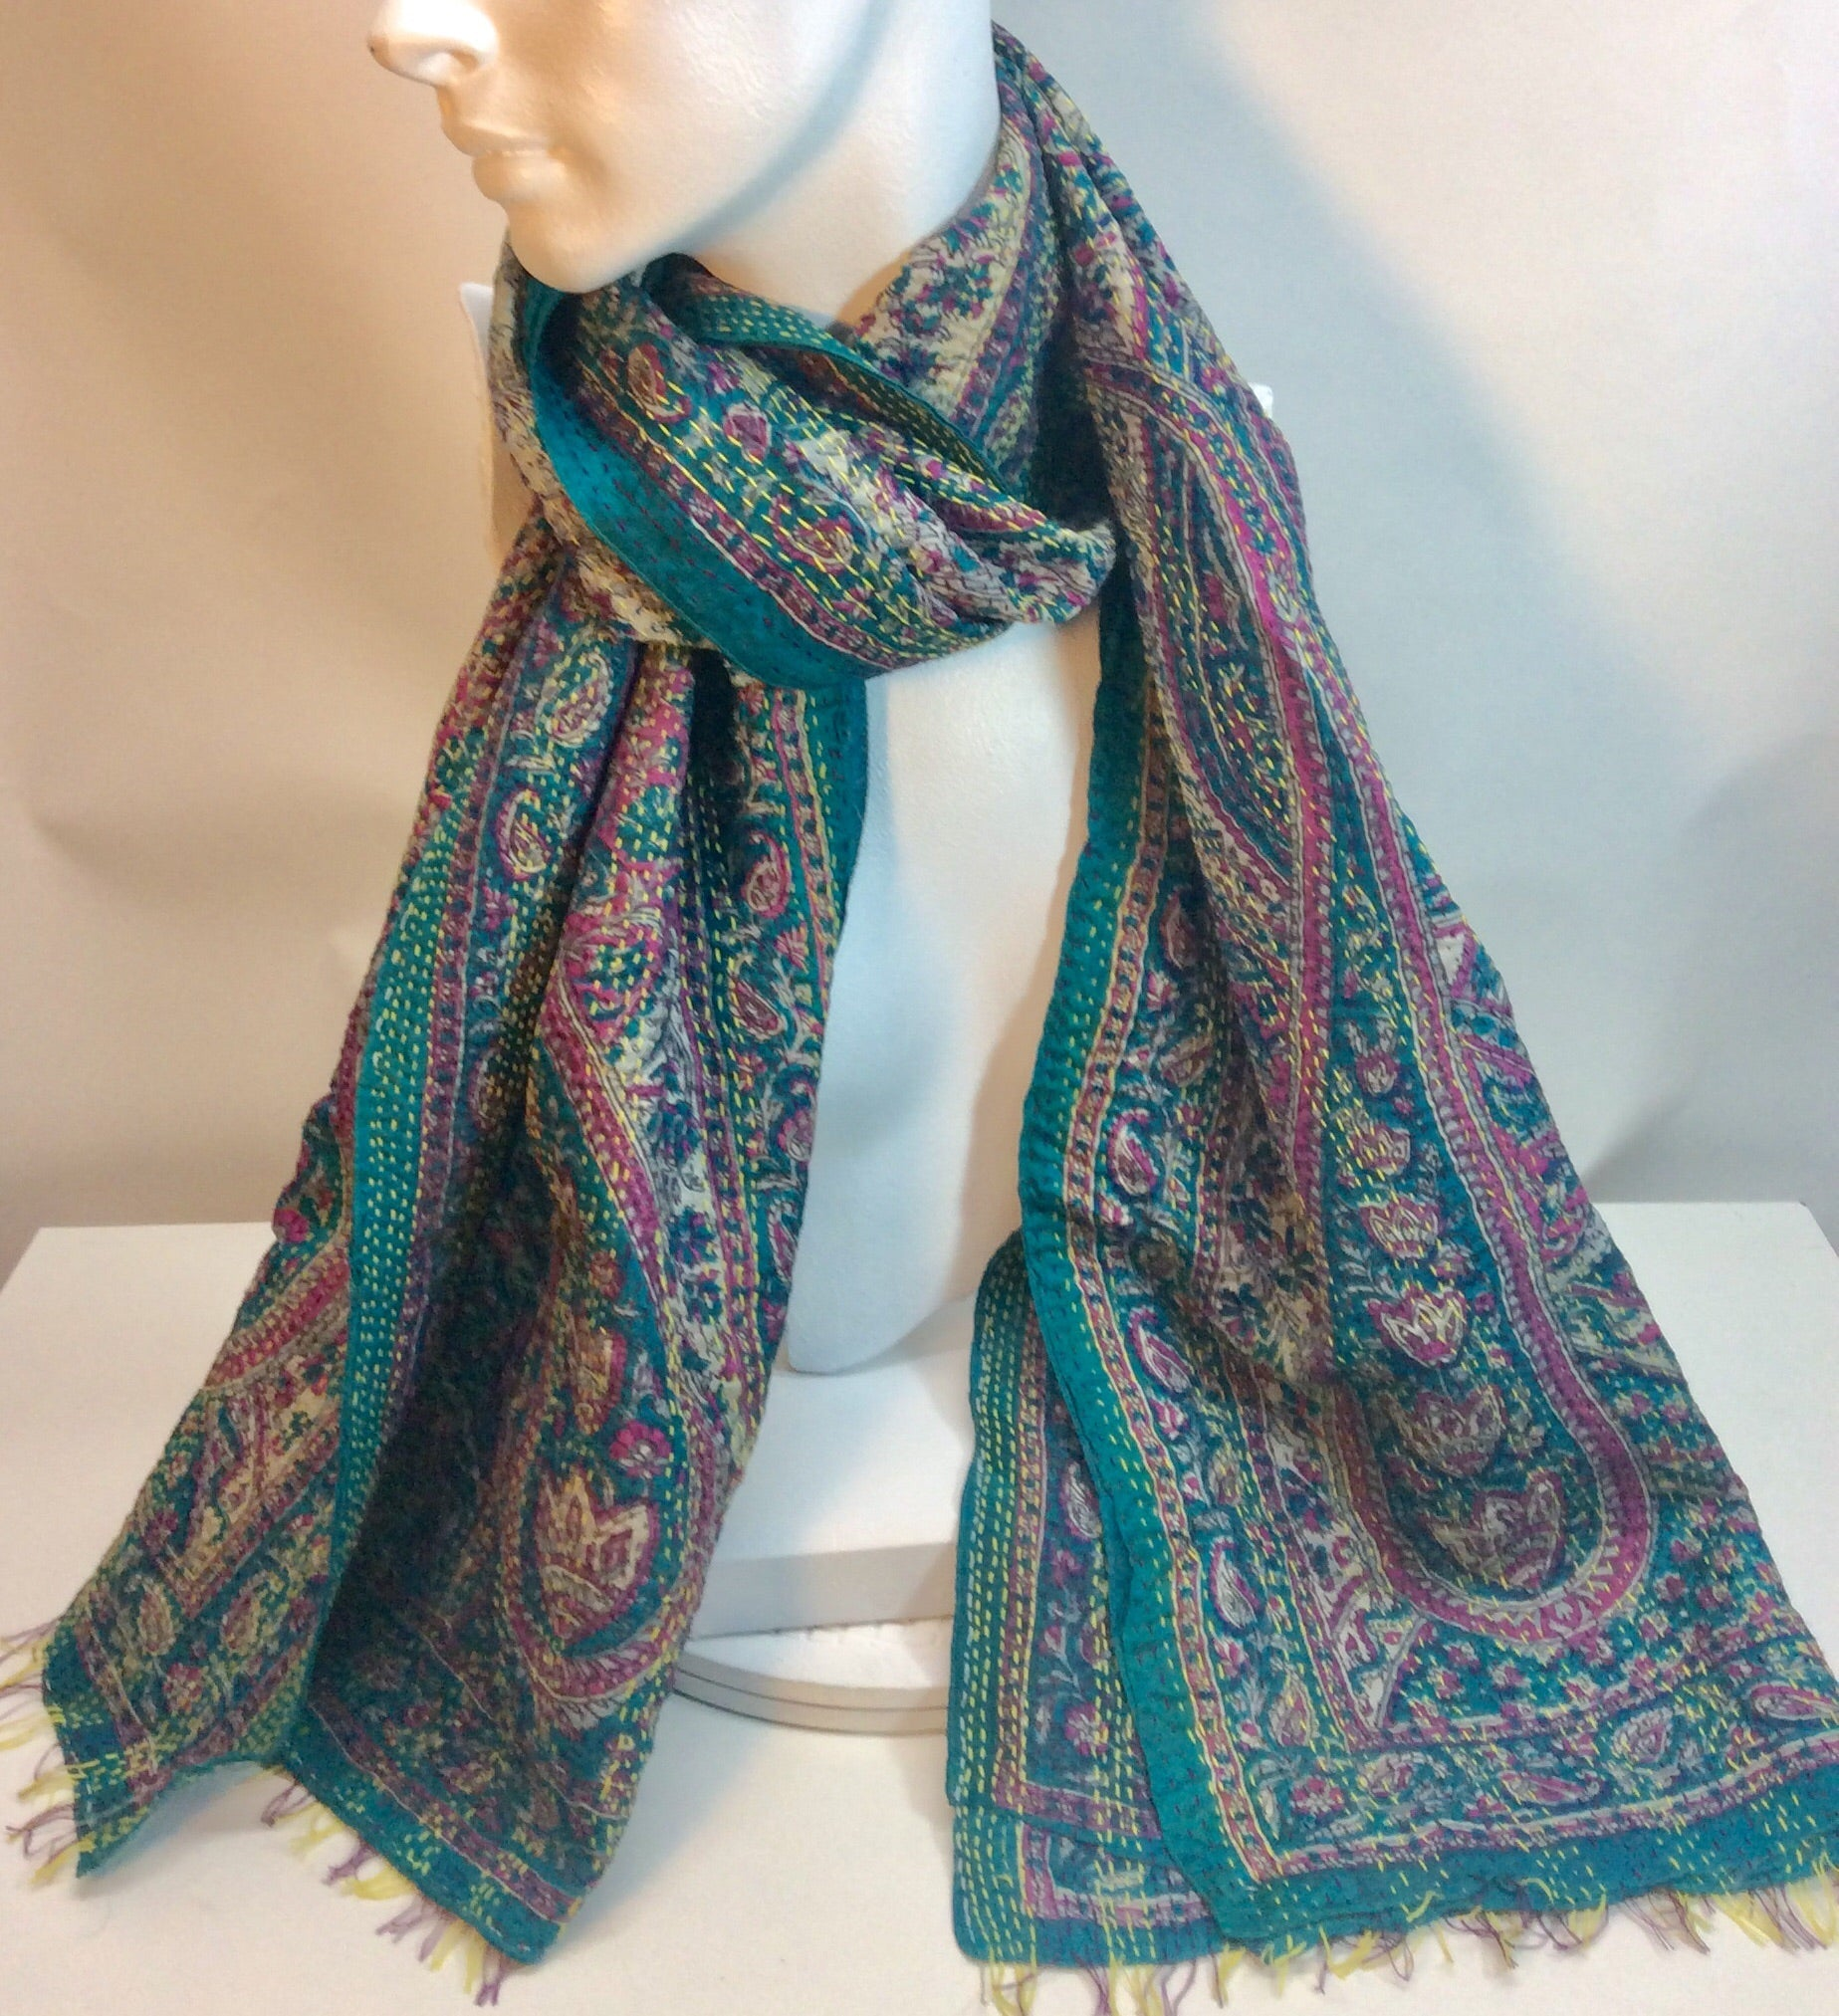 Paisley design in turquoise and pink silk scarf